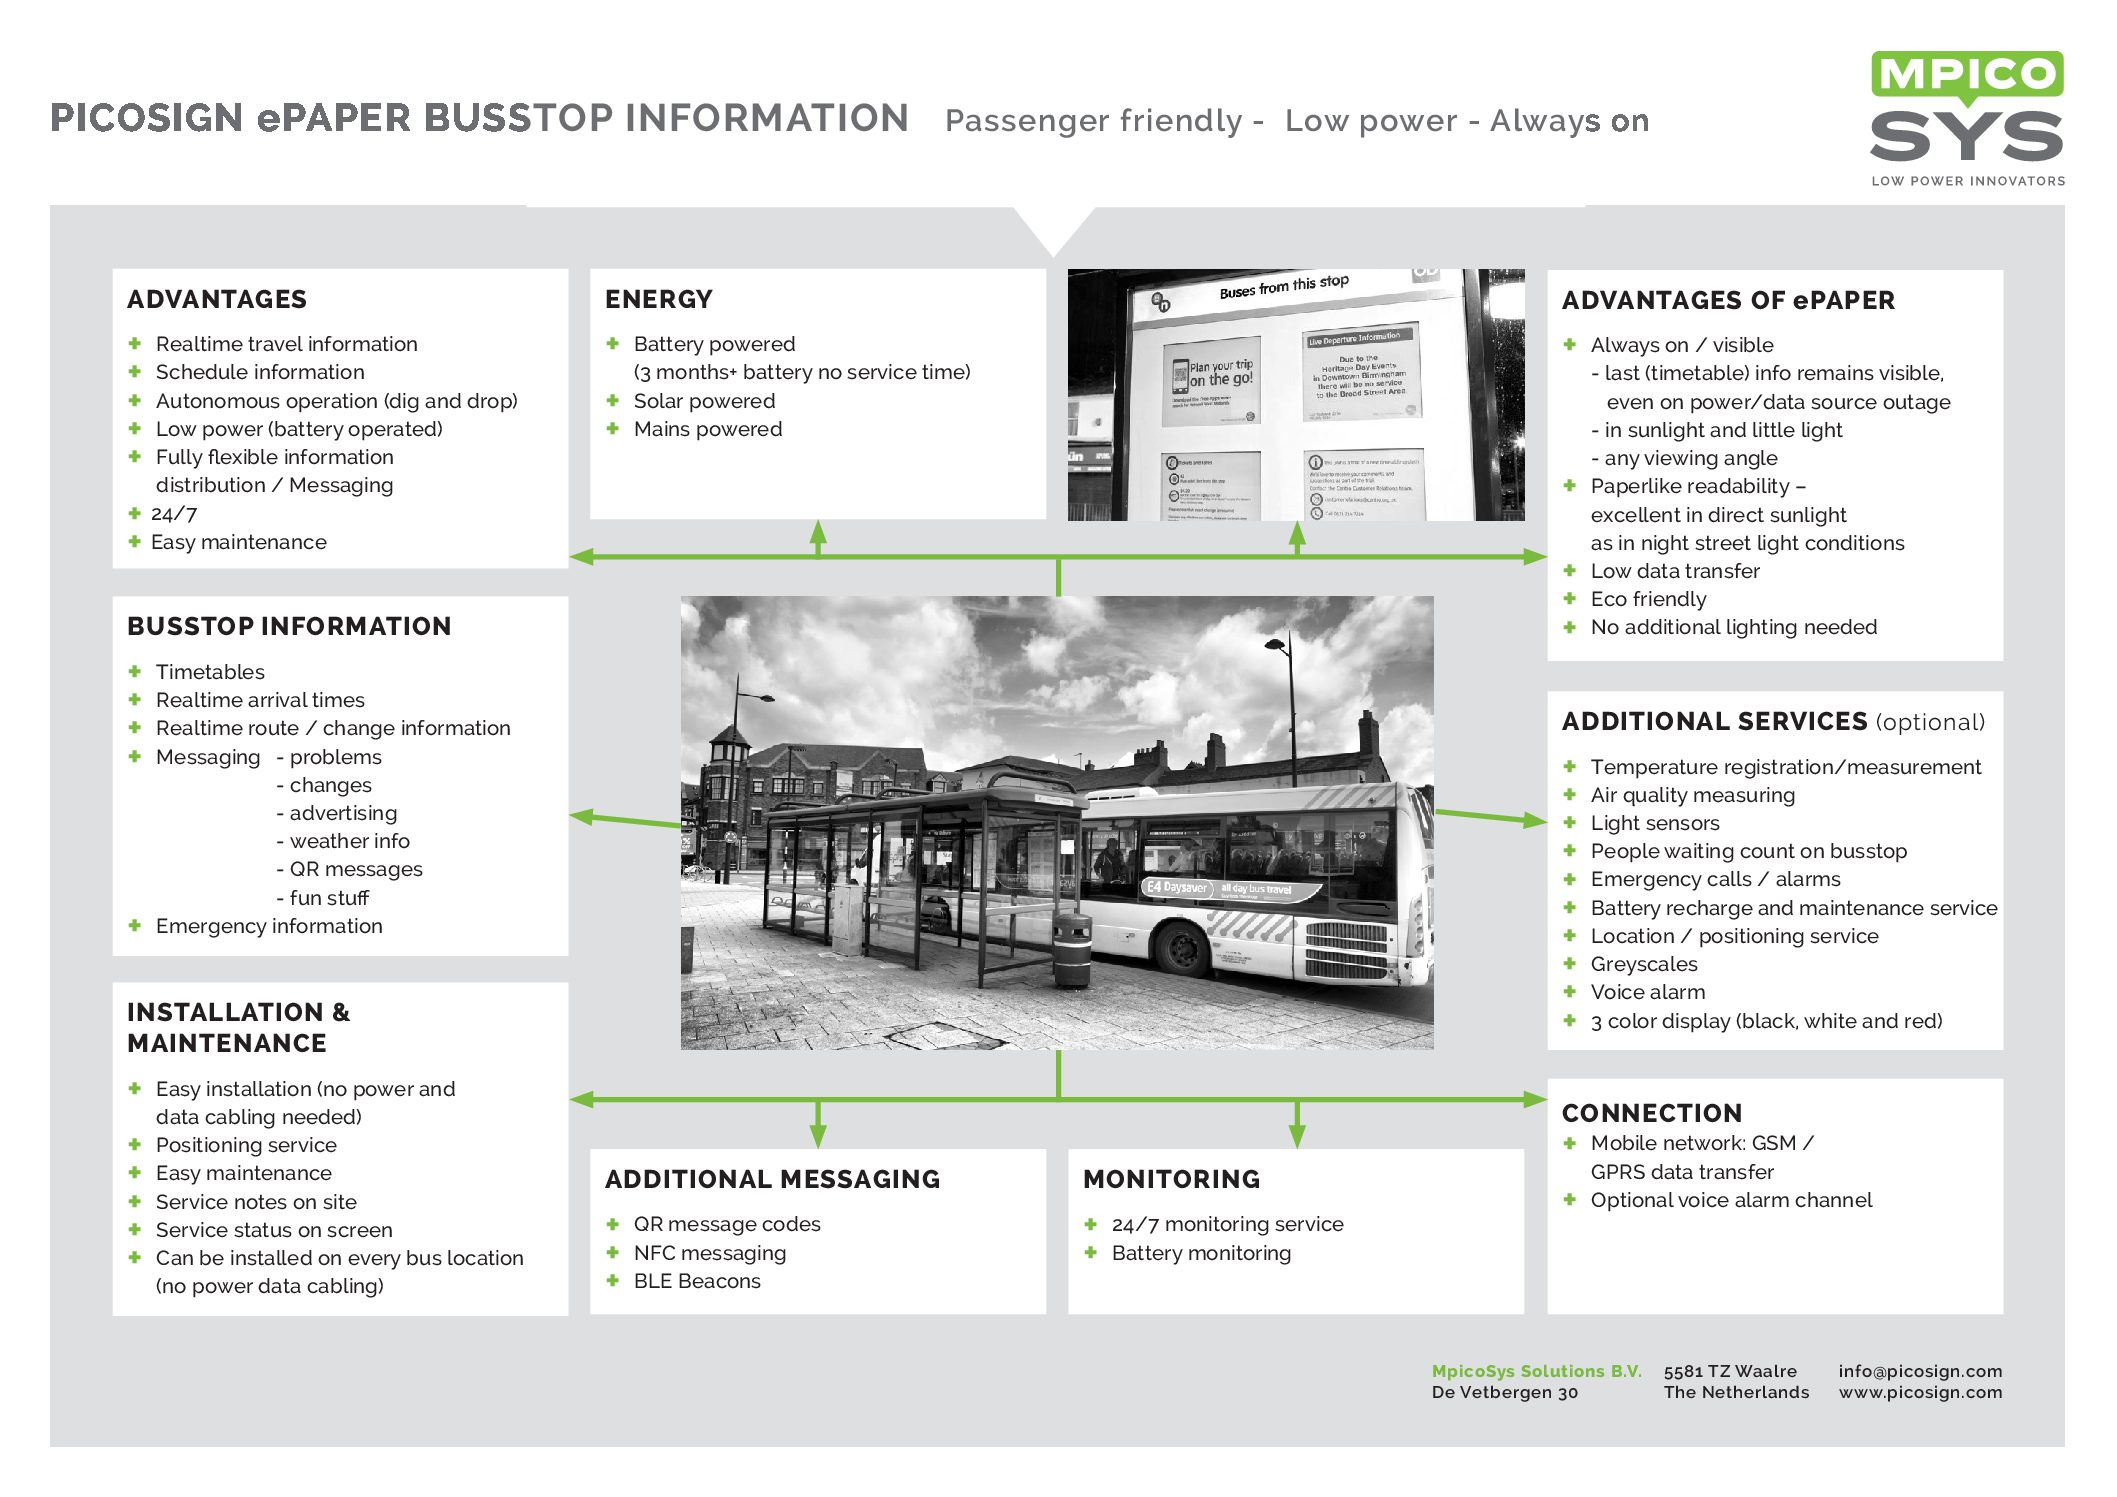 20161216-PicoSign-ePaper Busstop Information-A3